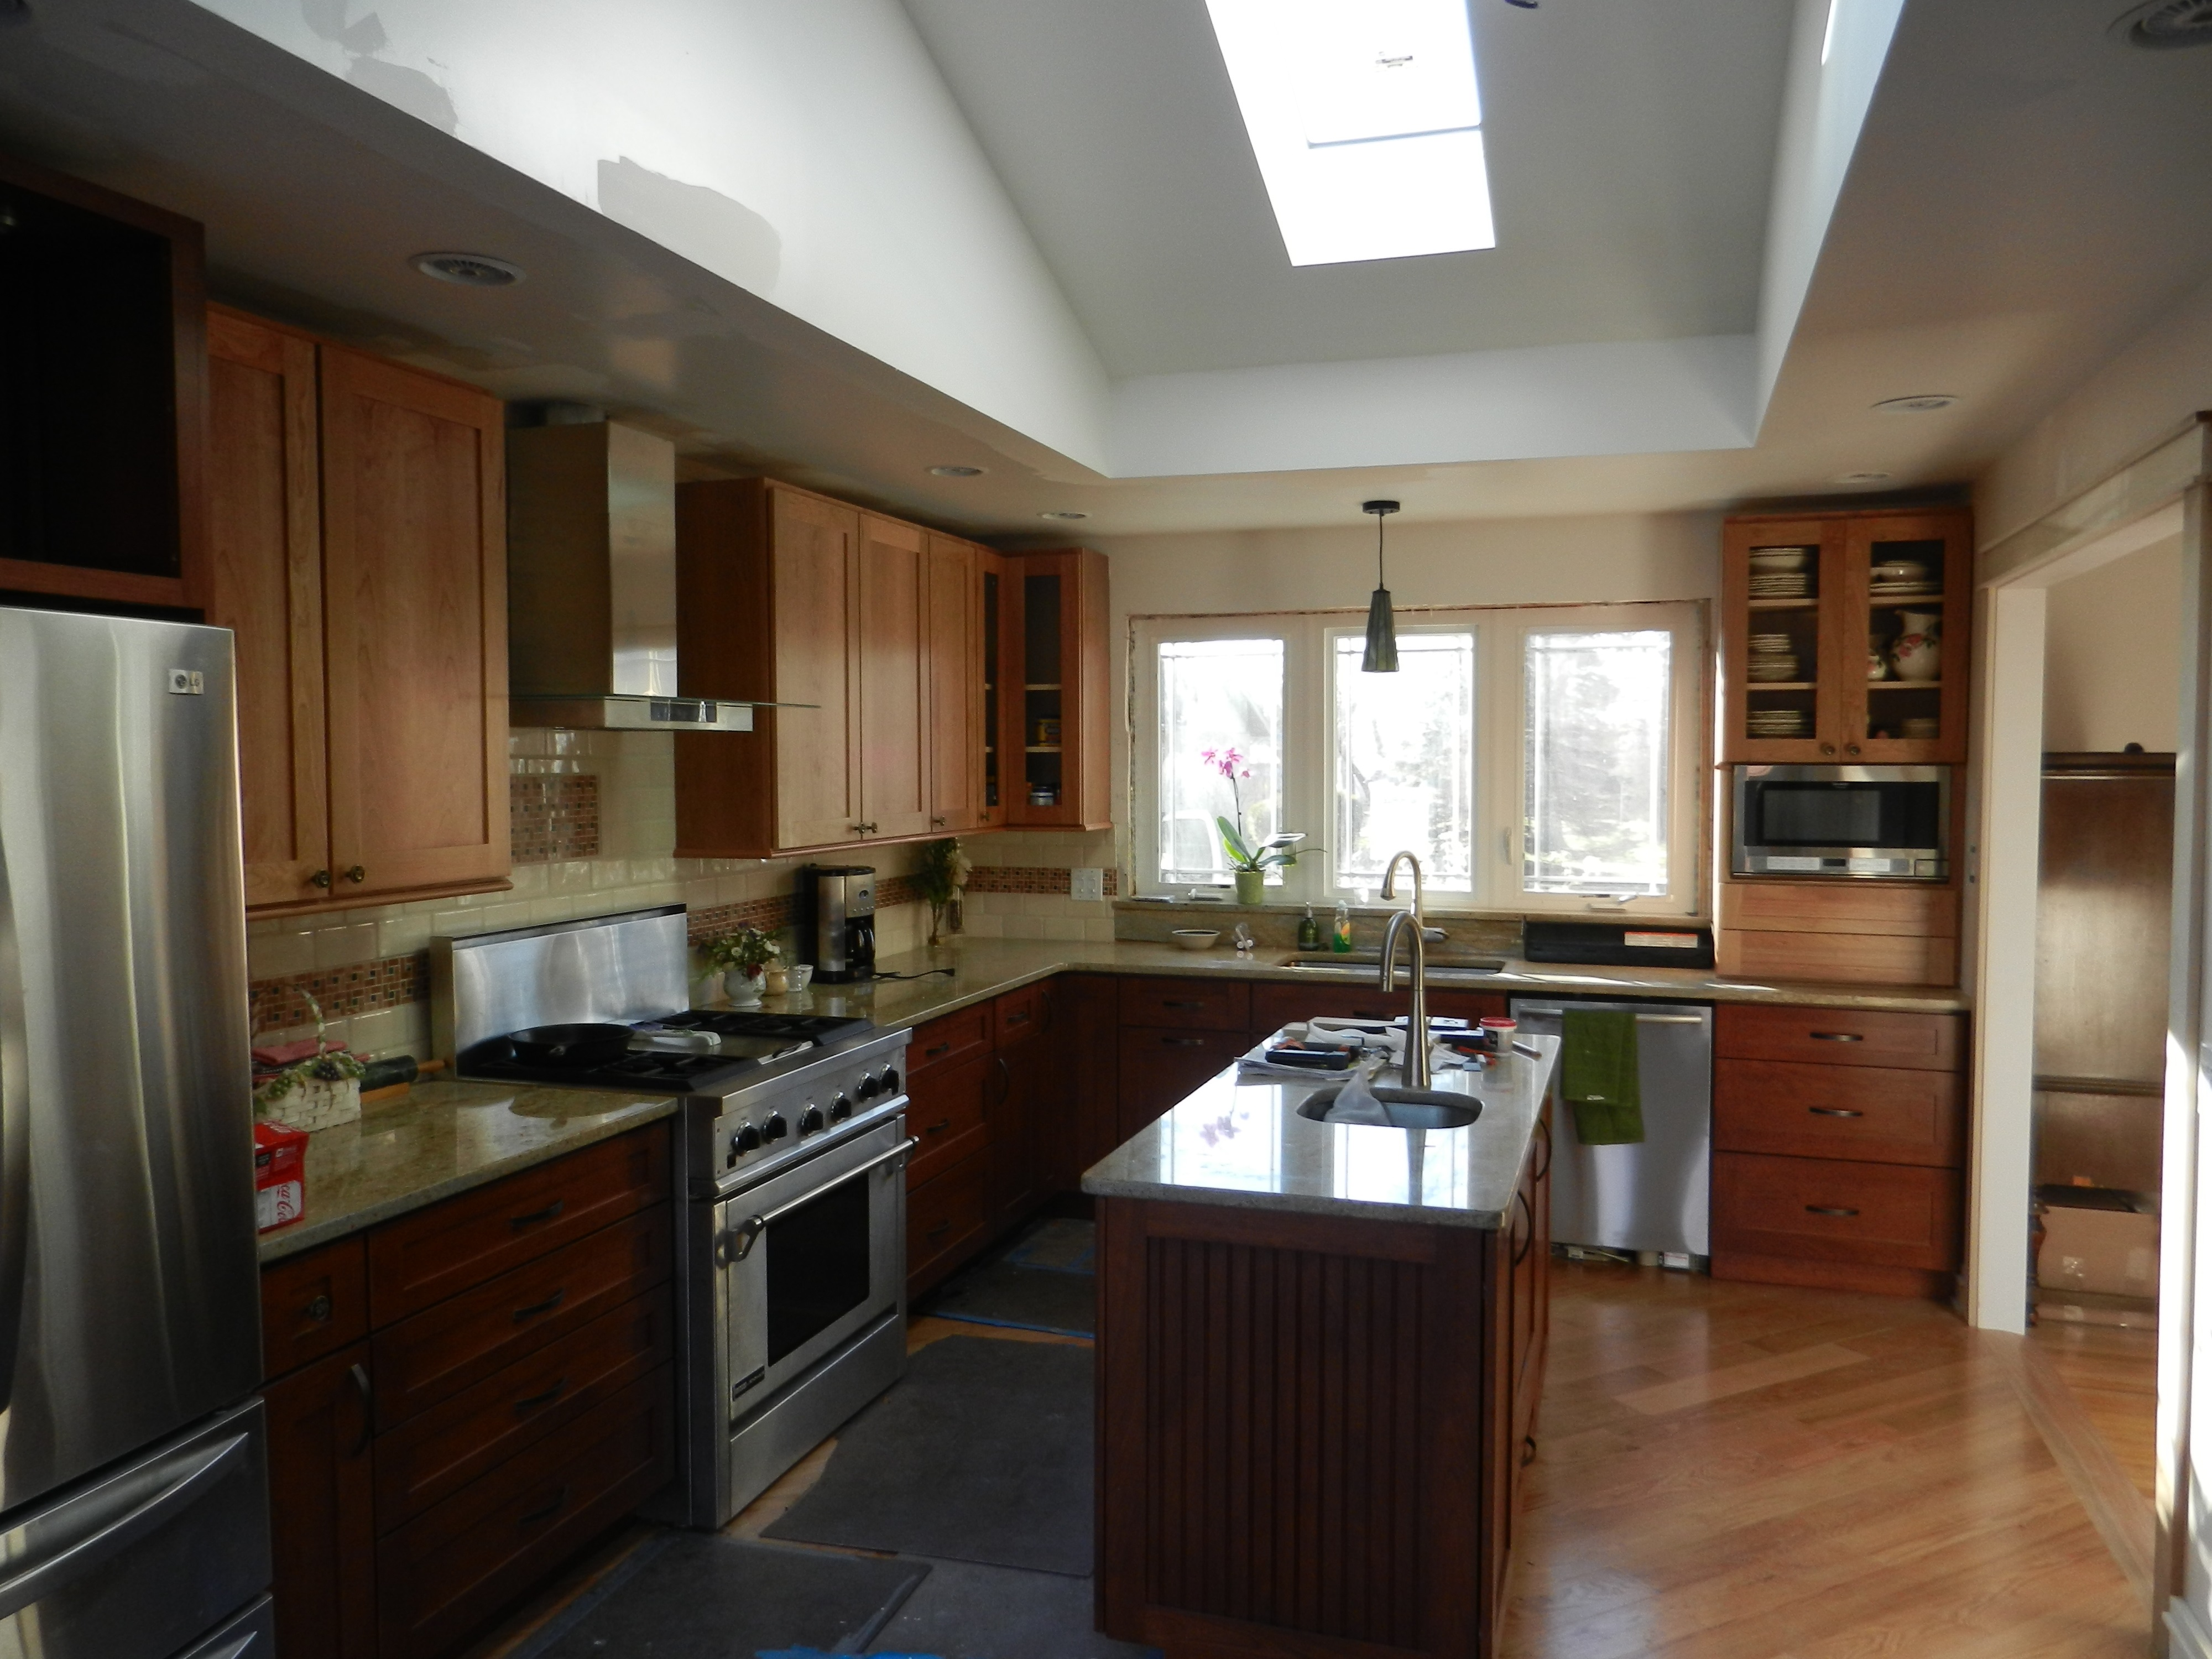 Classic solutions design remodeling manchester missouri for Local kitchen remodeling